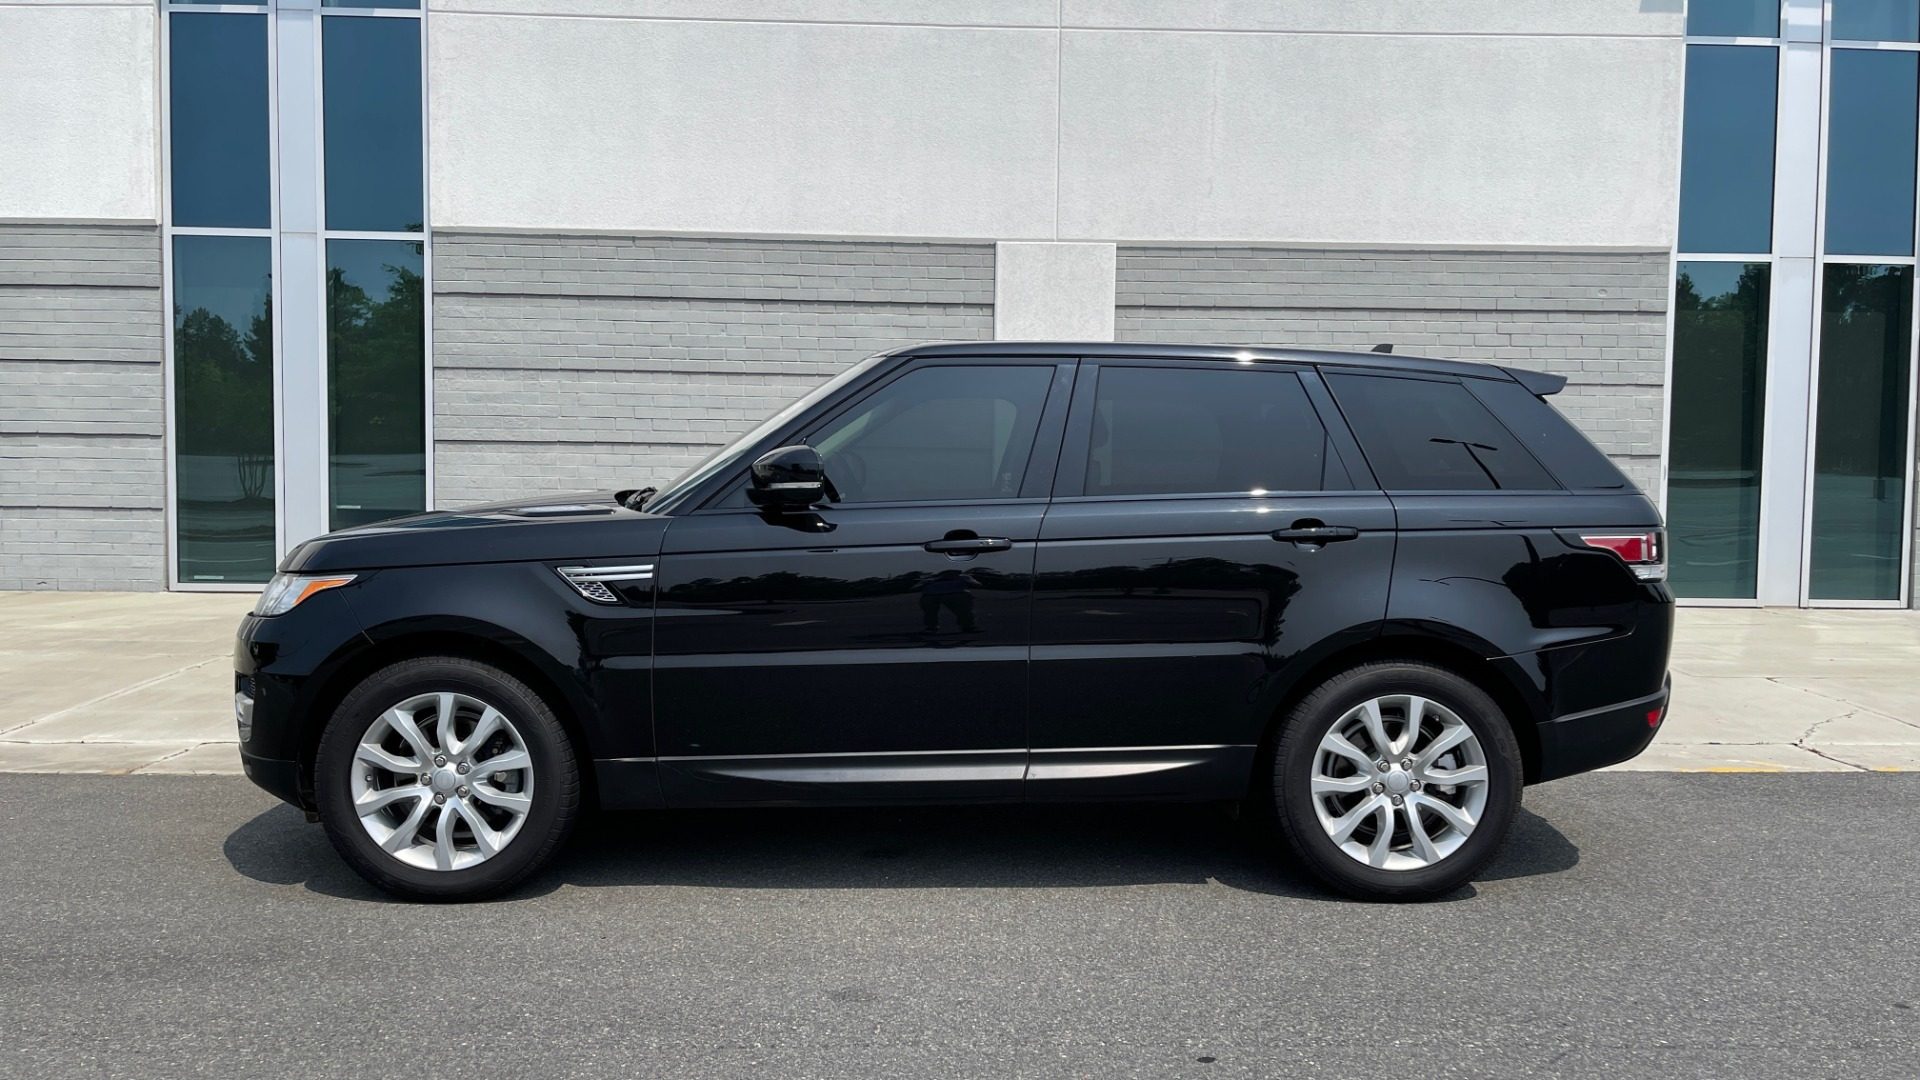 Used 2016 Land Rover RANGE ROVER SPORT V6 HSE / NAV / PANO-ROOF / MERIDIAN / CONSOLE COOLER / CAMERAS for sale $40,995 at Formula Imports in Charlotte NC 28227 4